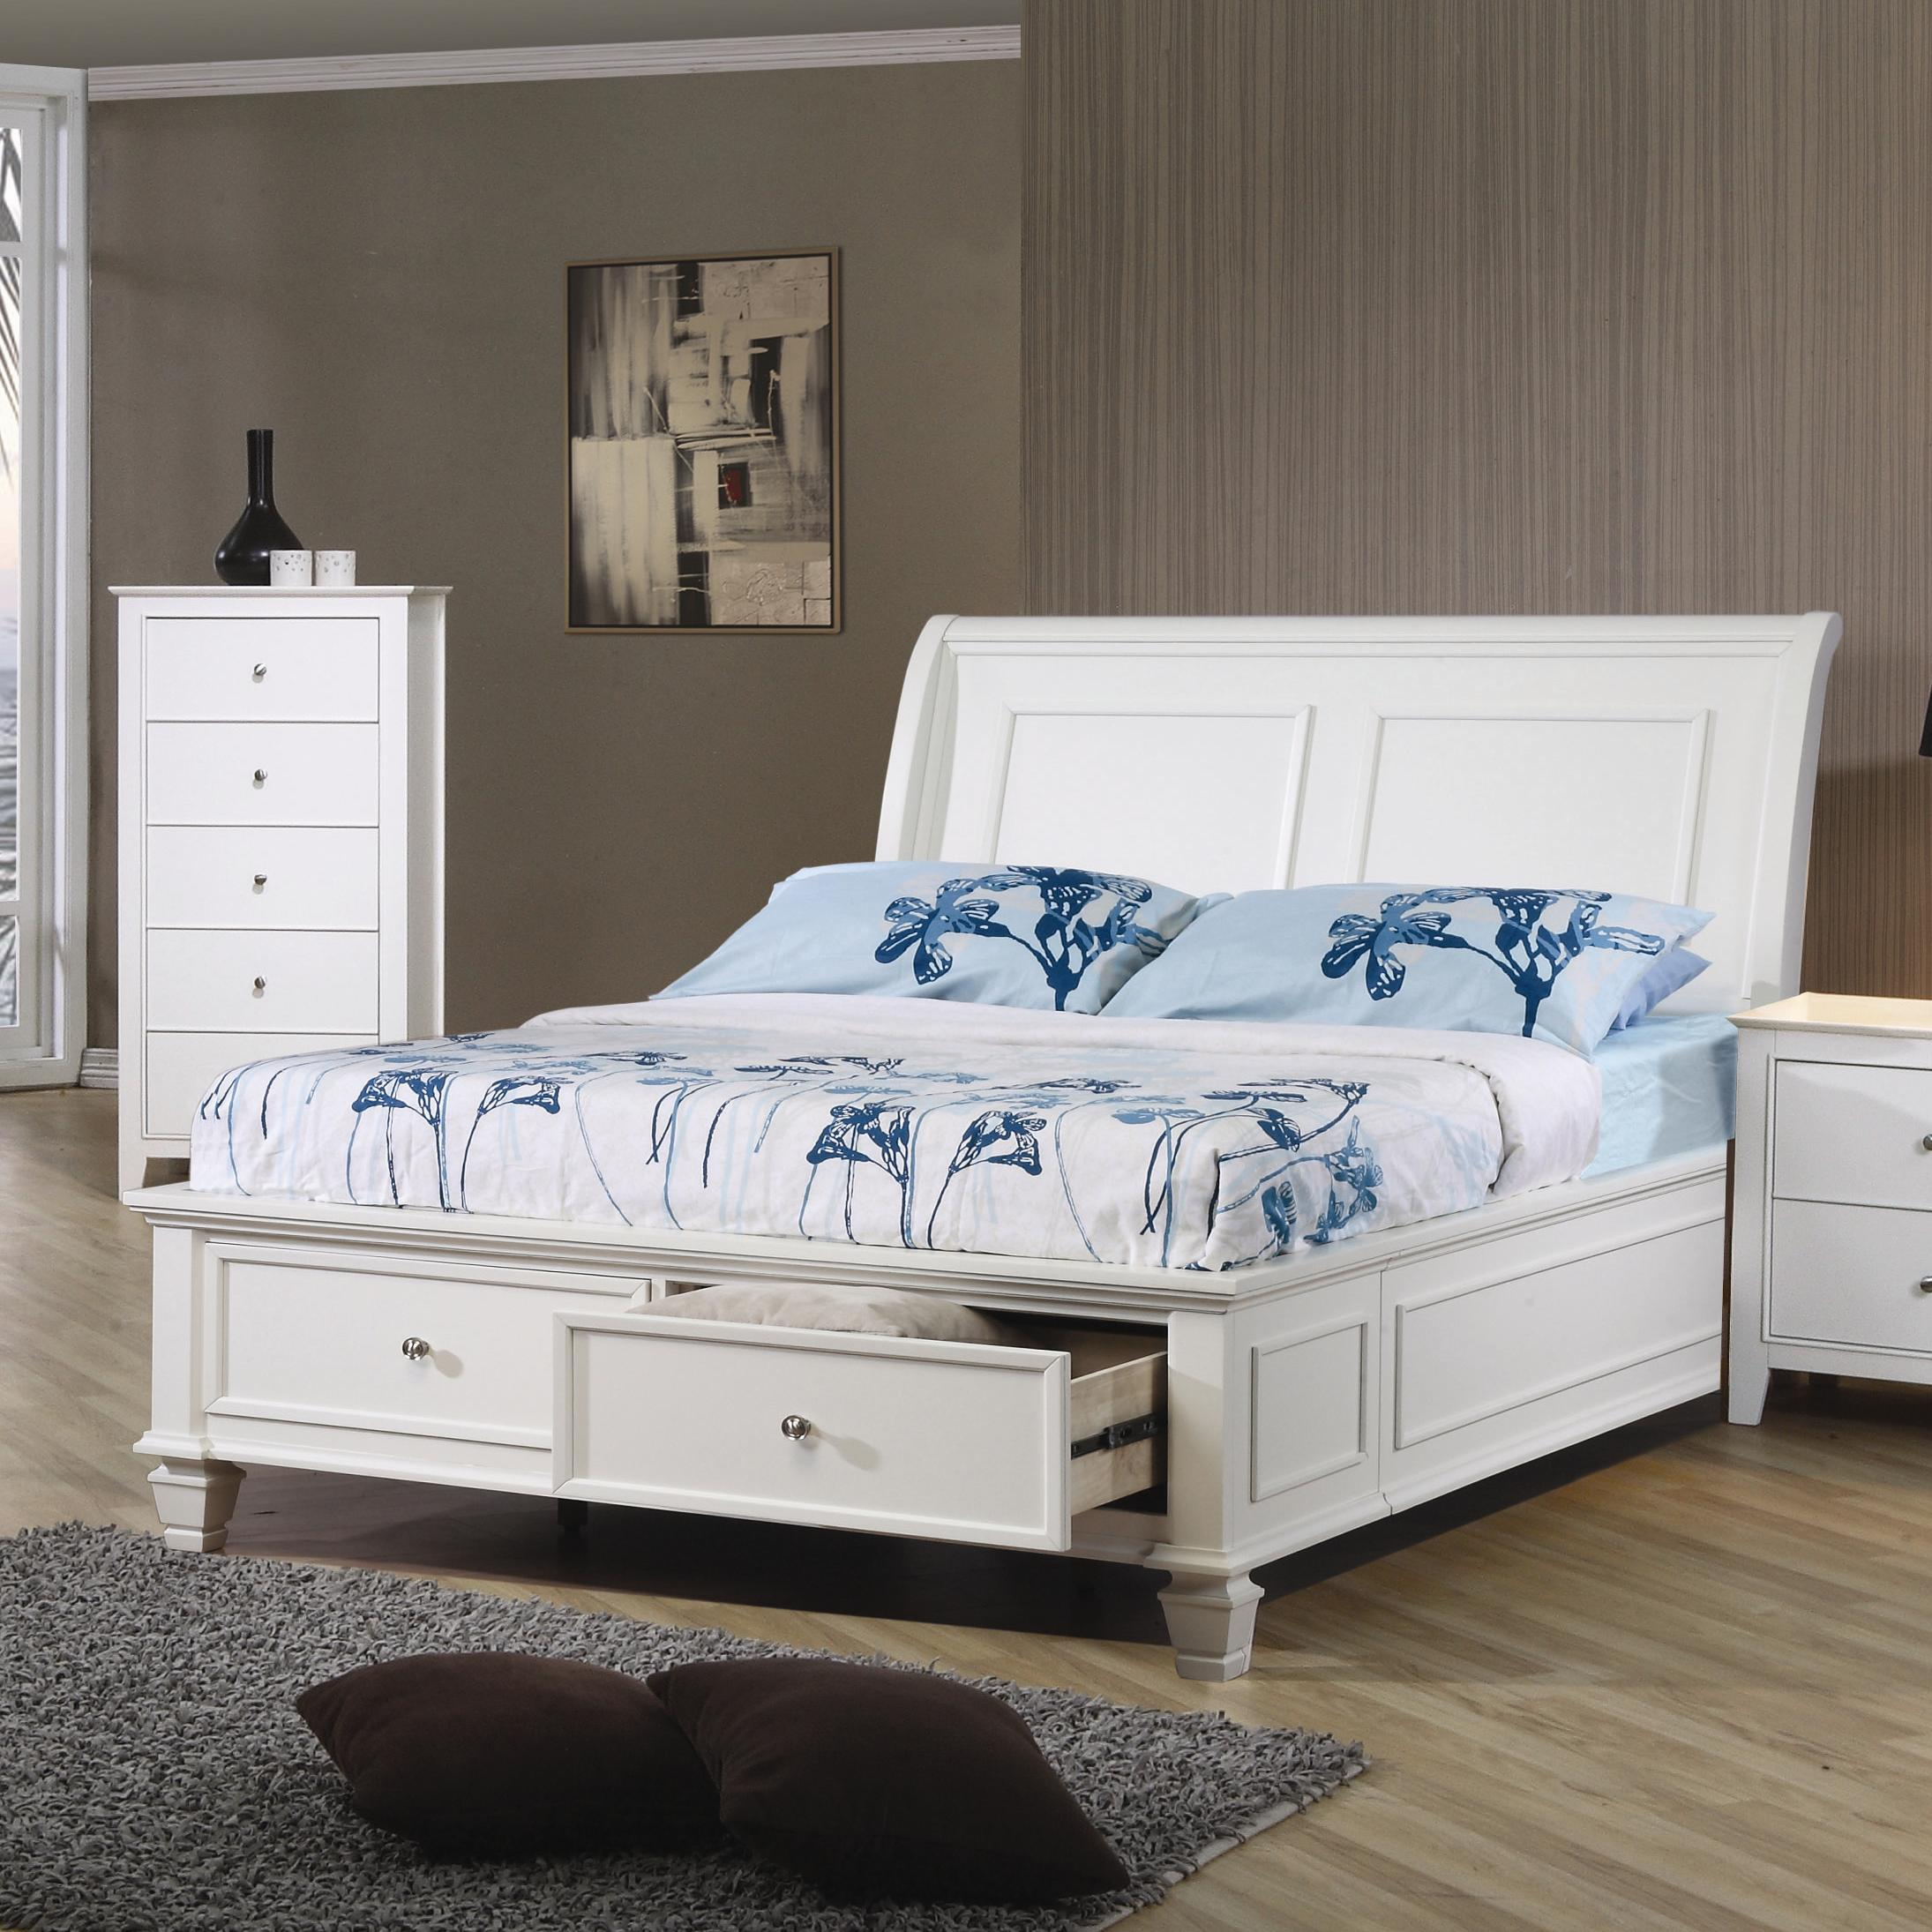 Sandy Beach Twin Sleigh Bed by Coaster at Standard Furniture